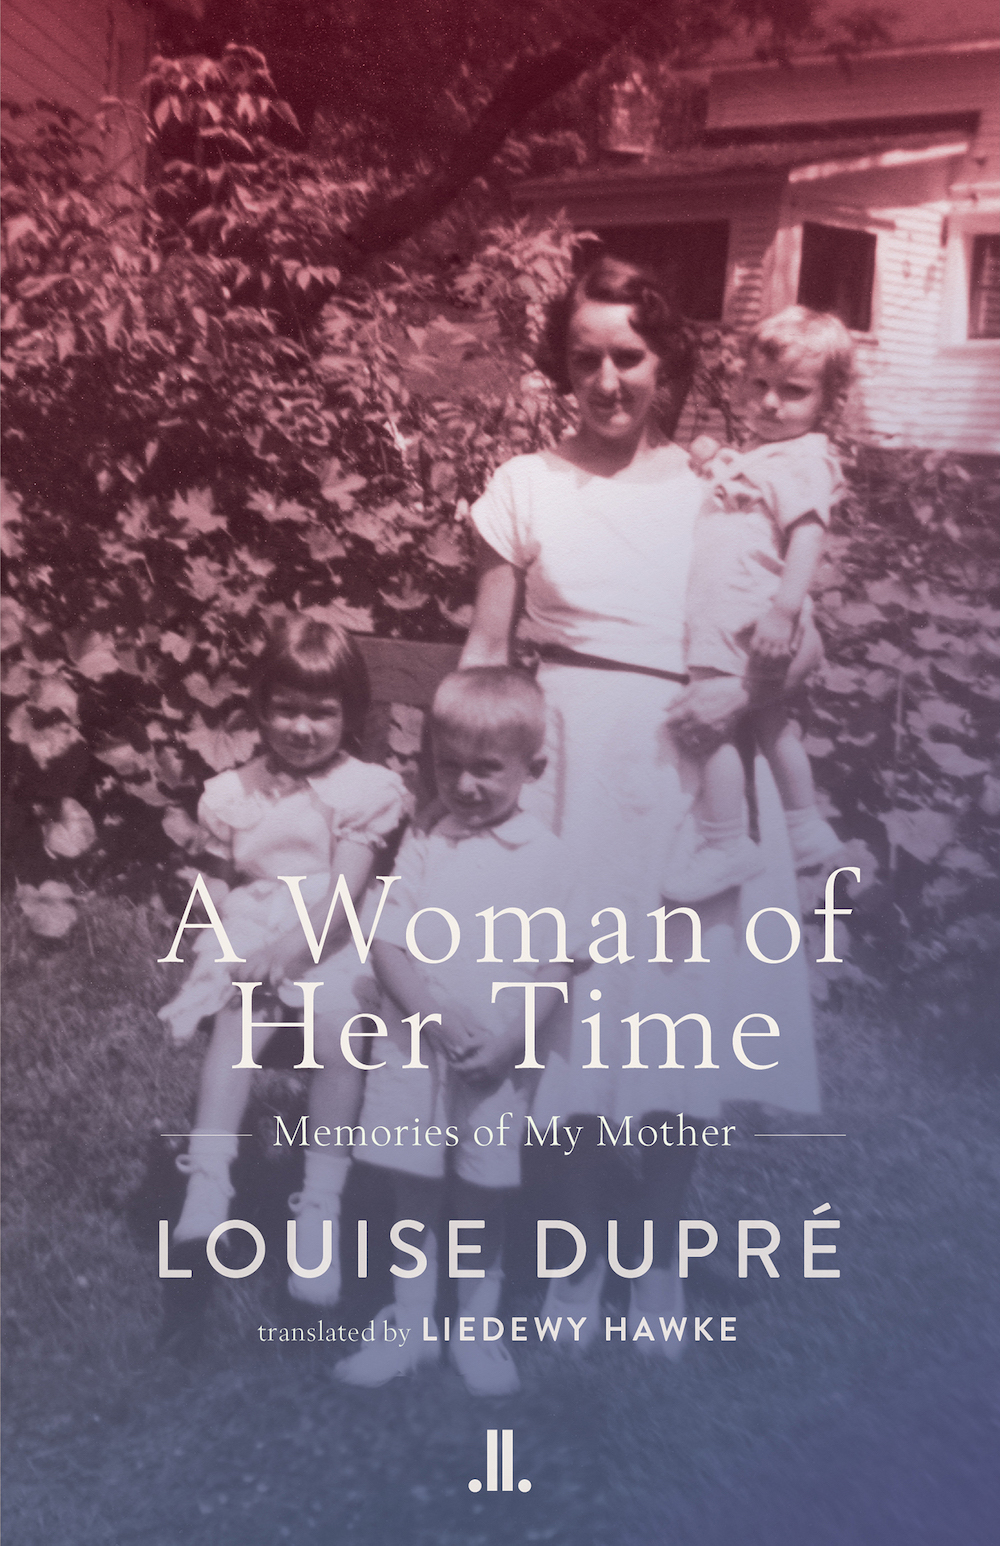 A Woman of Her Time: Memories of My Mother